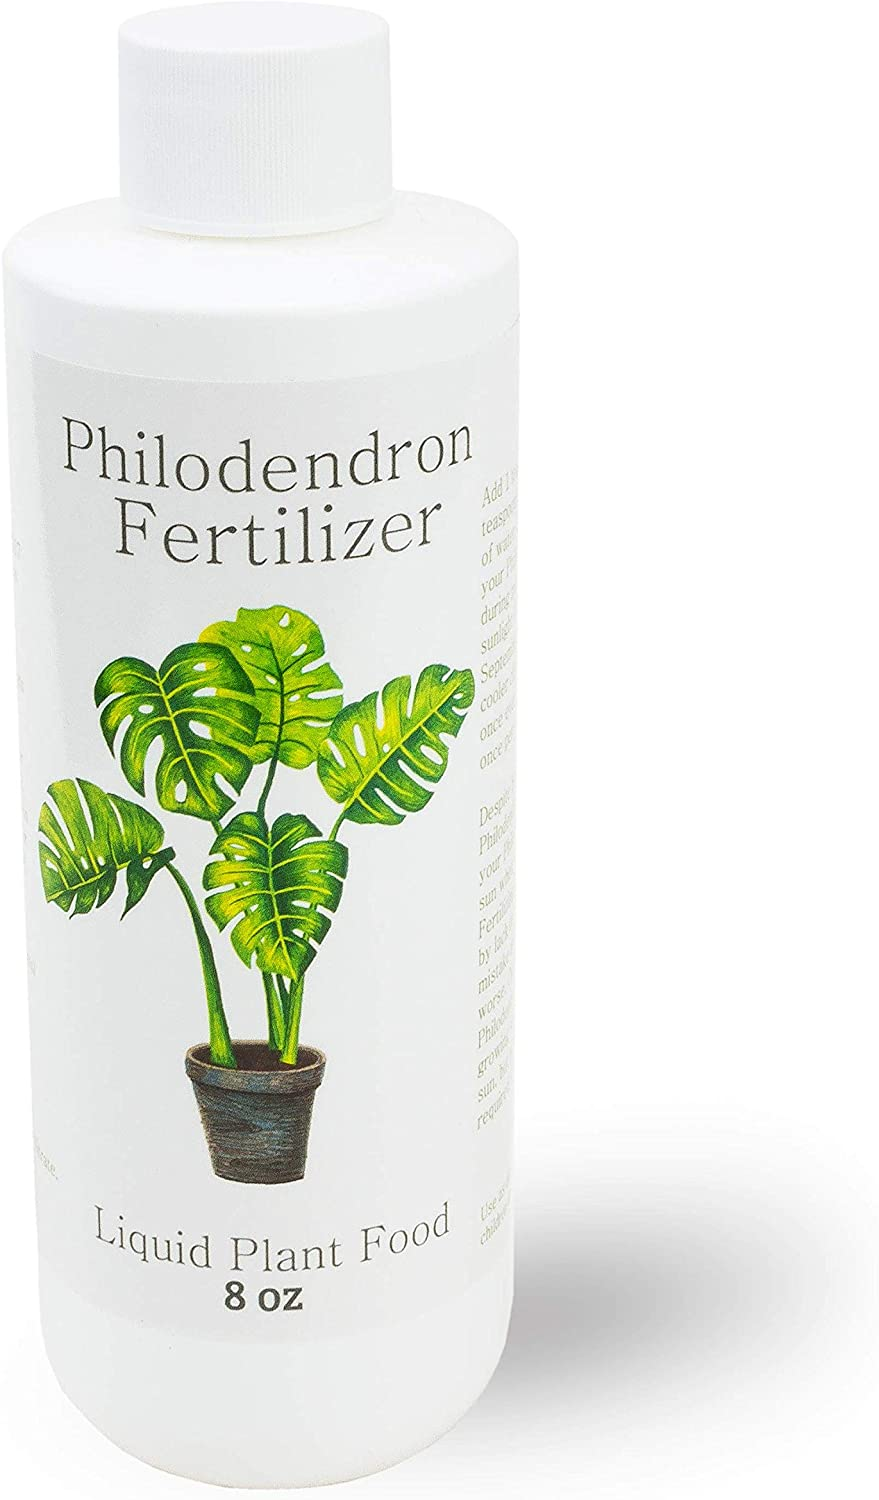 Philodendron Fertilizer PhilodendronPlant Food Indoor Plant Food Liquid Fertilizer for Philodendron Micans Selloum Plantvine Burle Marx NPK Fertilizer by Aquatic Arts